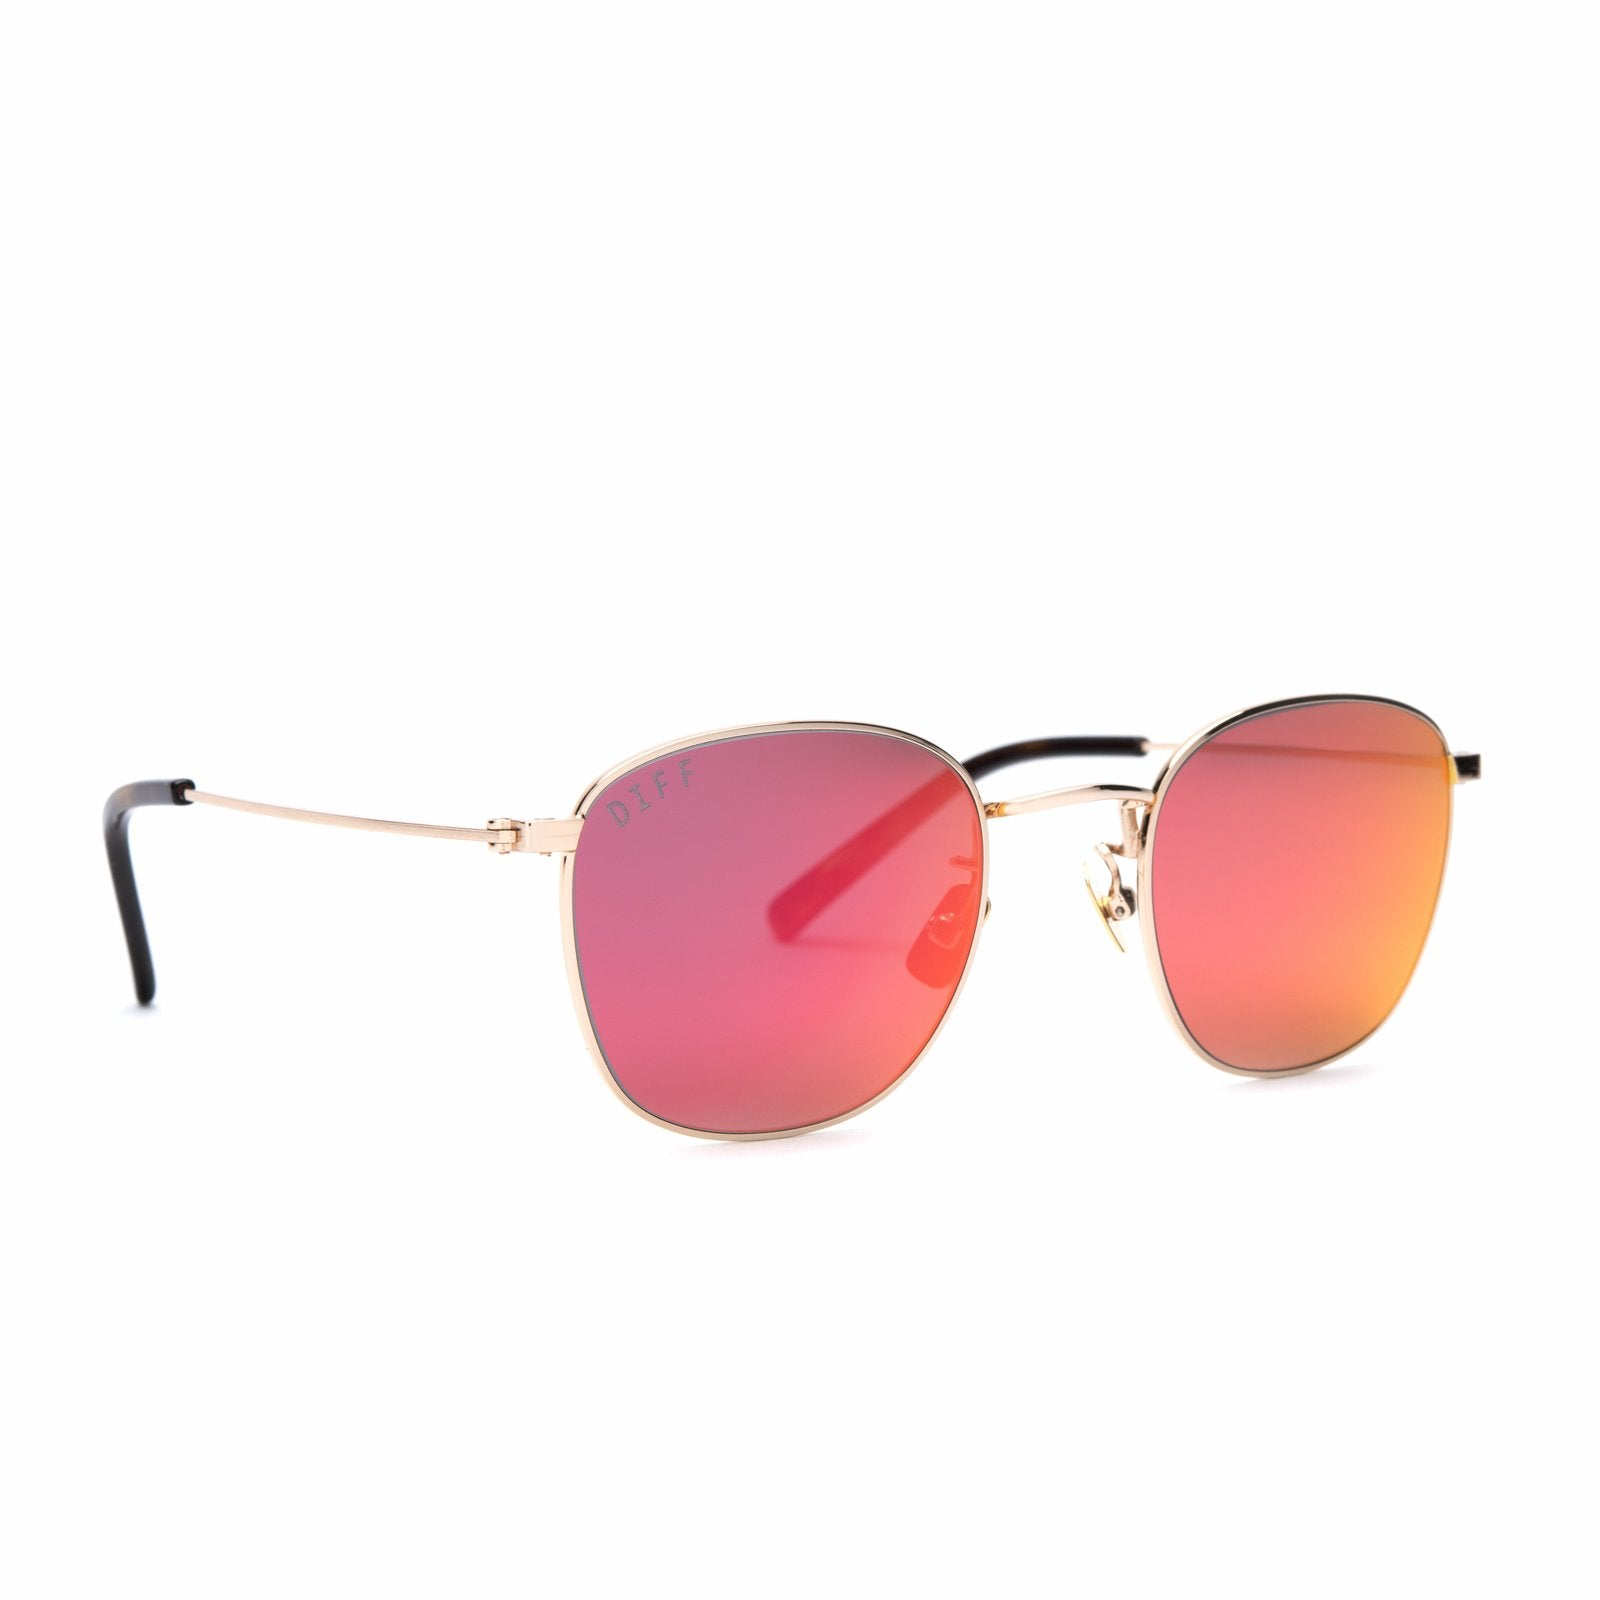 Axel sunglasses with gold frames and red mirror lens angle view